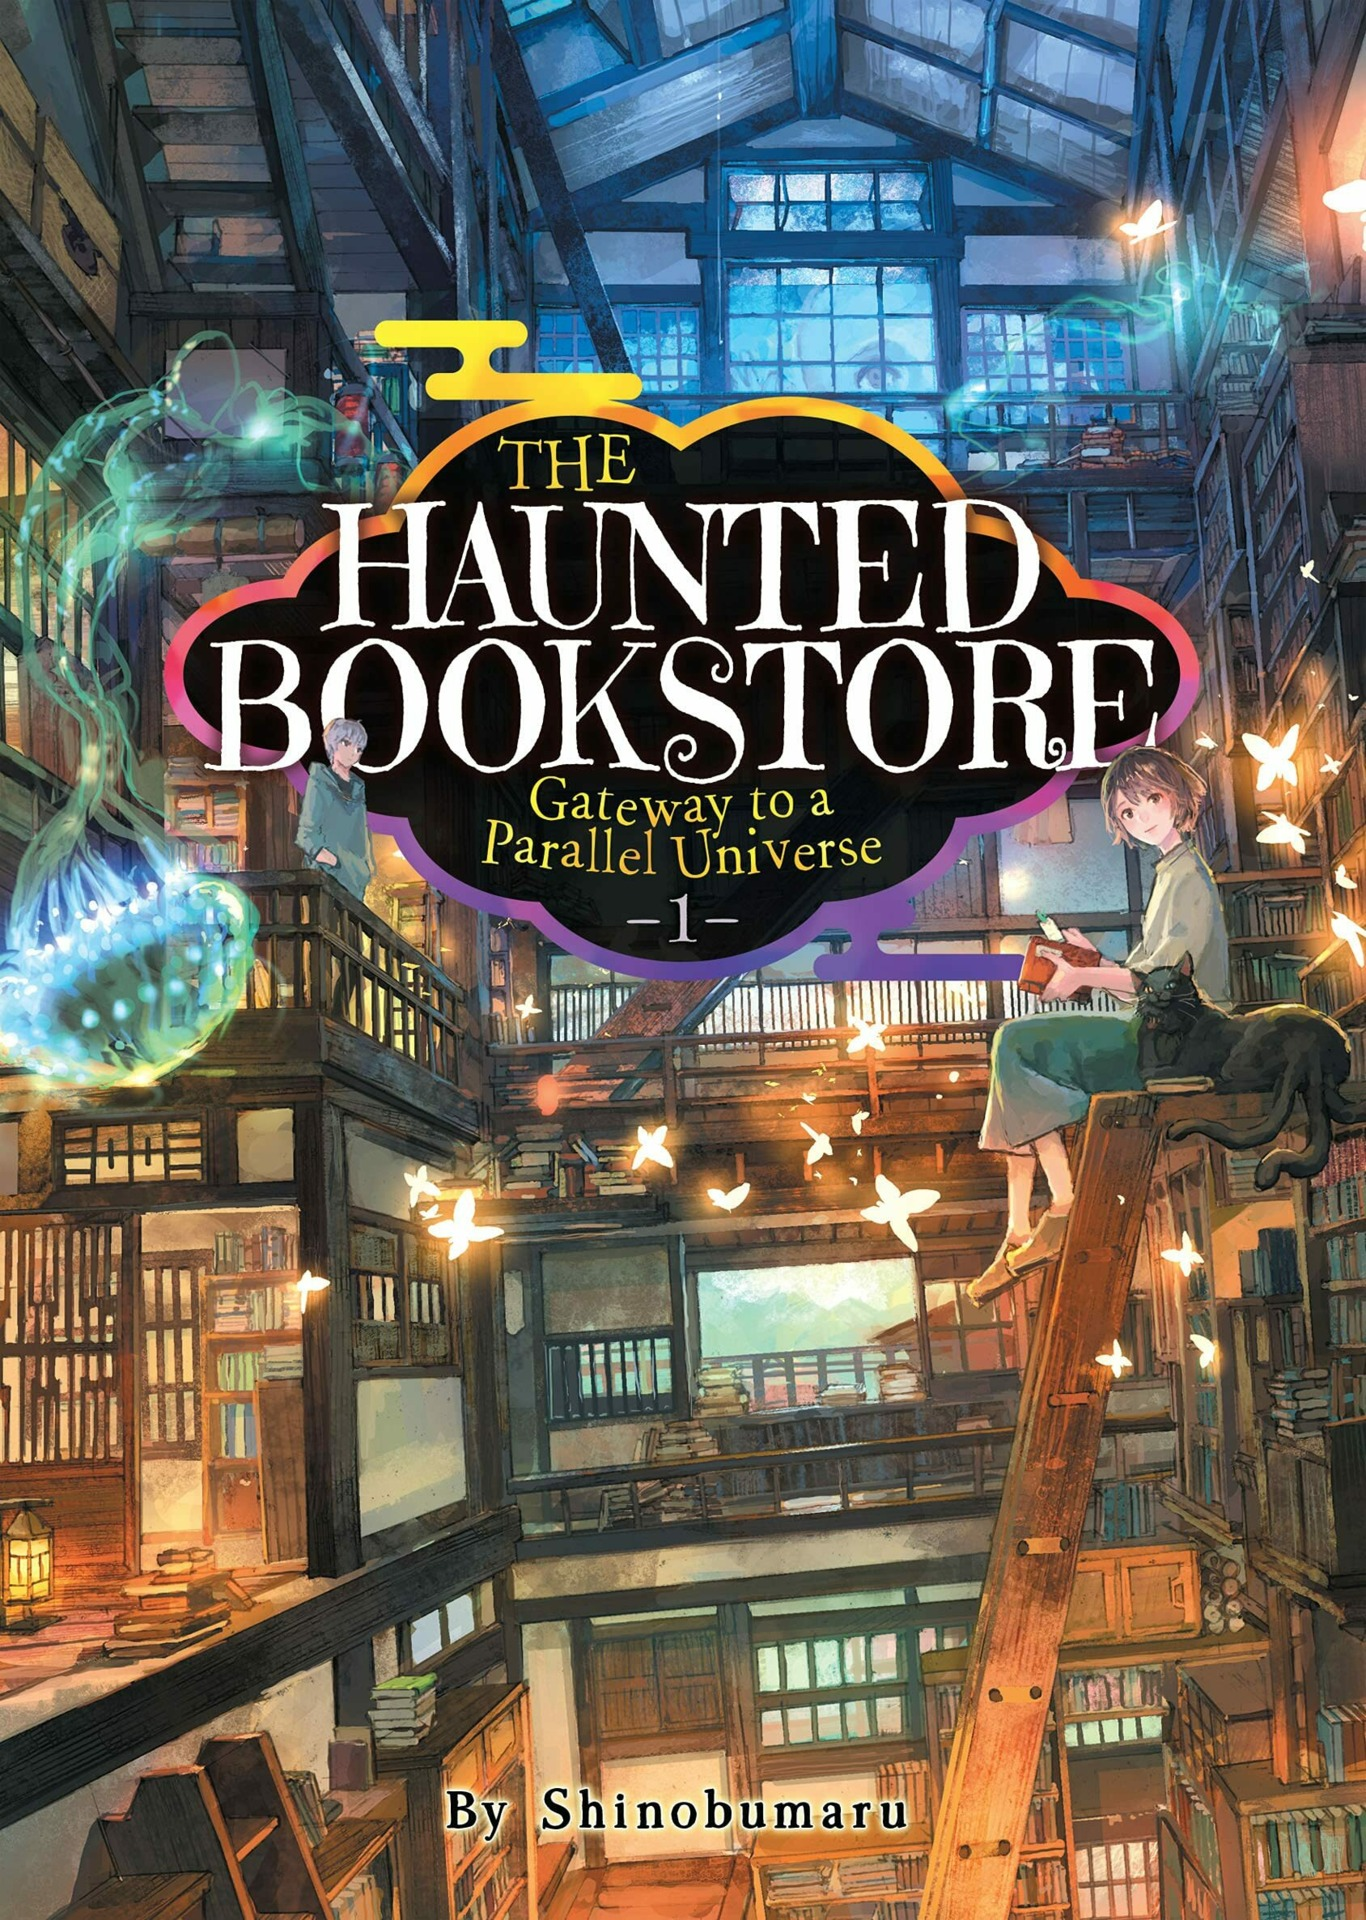 The Haunted Bookstore: Gateway to a Parallel Universe